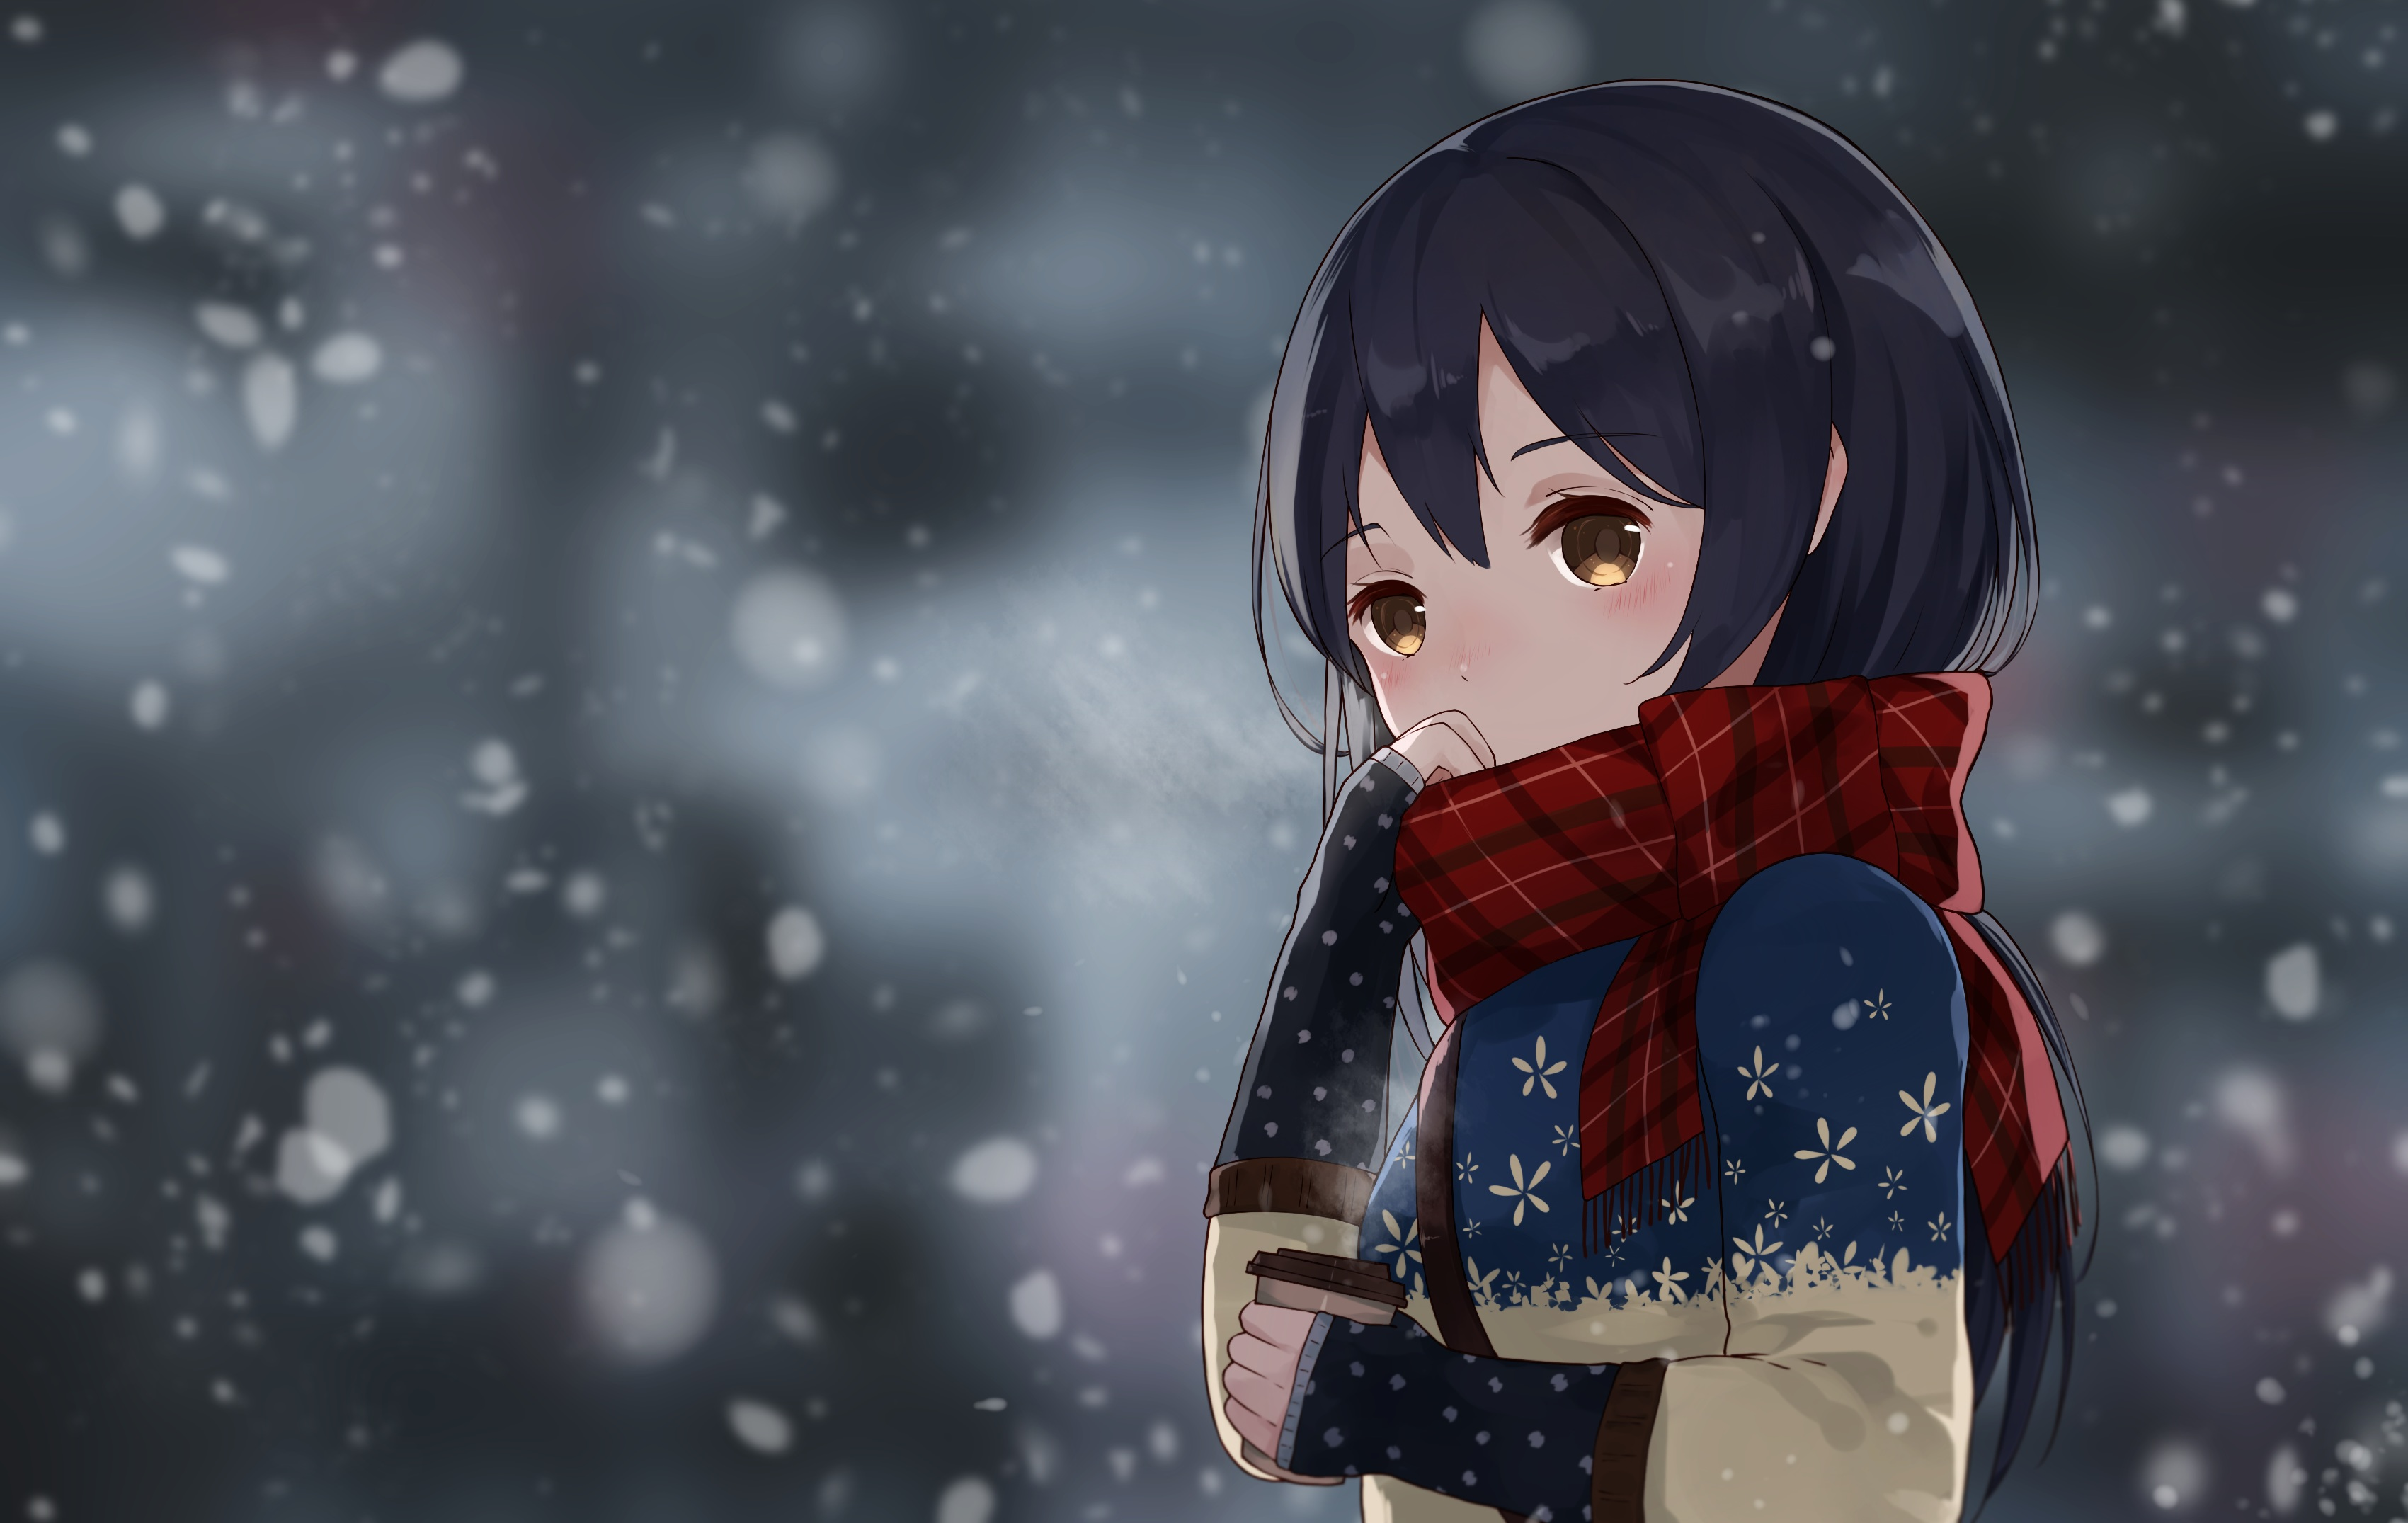 Live Winter Snow Fall Background Wallpaper Umi Sonoda Hd Wallpaper Background Image 3401x2151